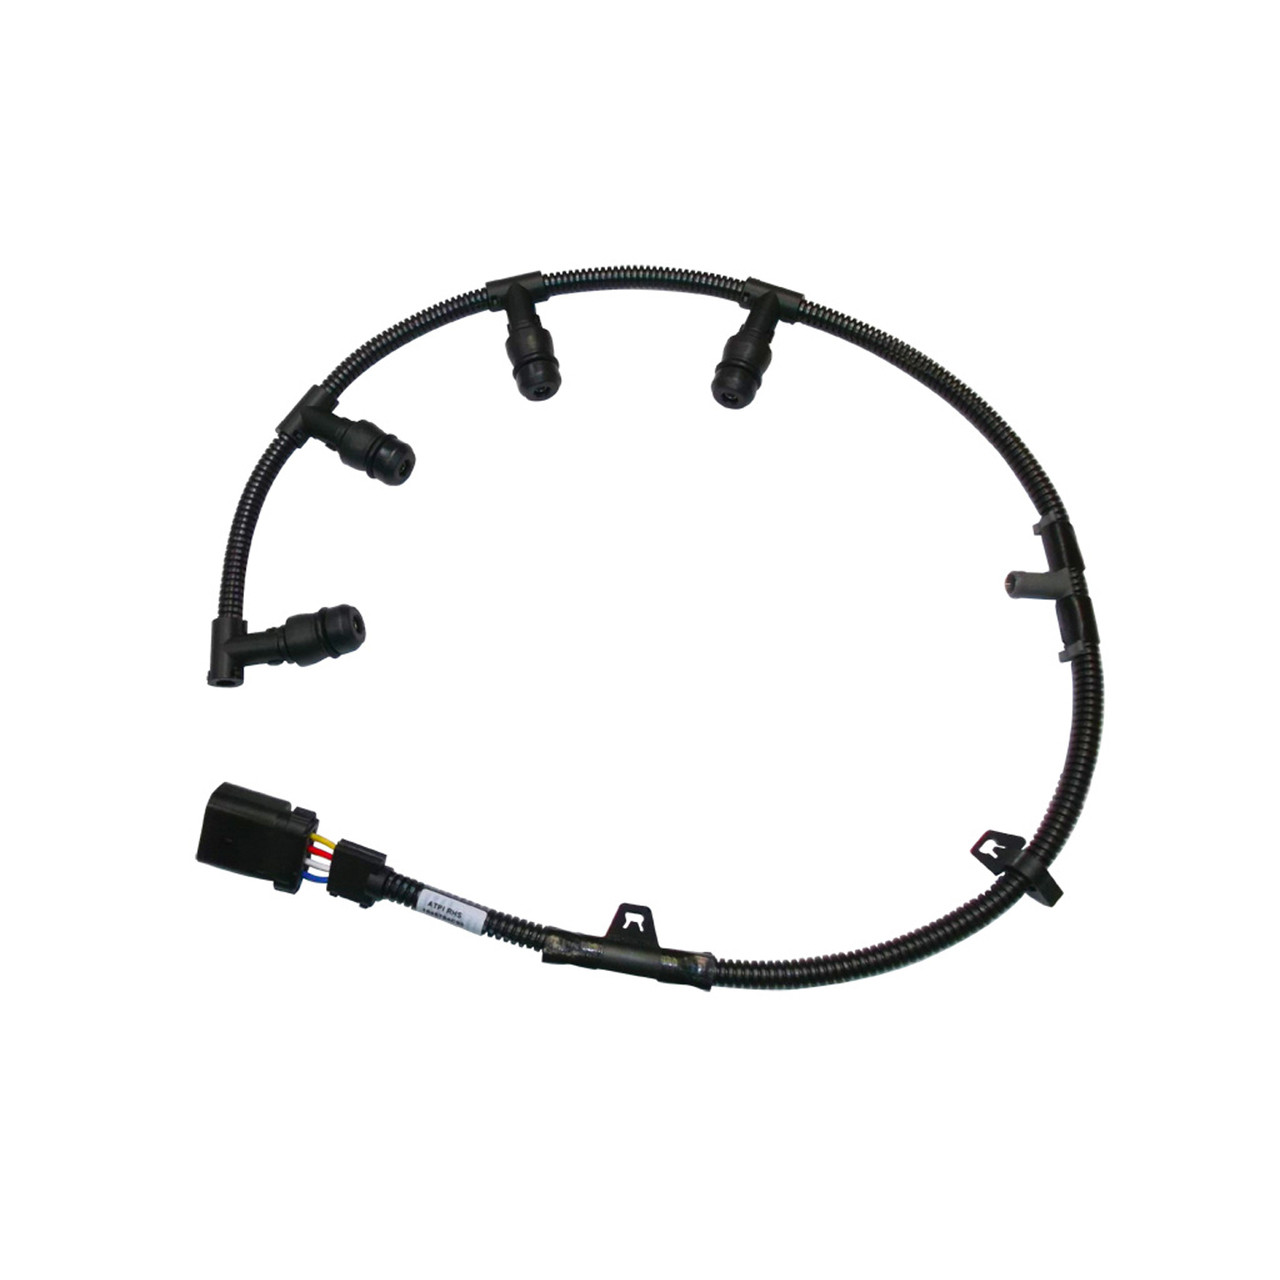 small resolution of ford 6 0l glow plug harness passenger side wh02961 sku wh02961 upc 613111101032